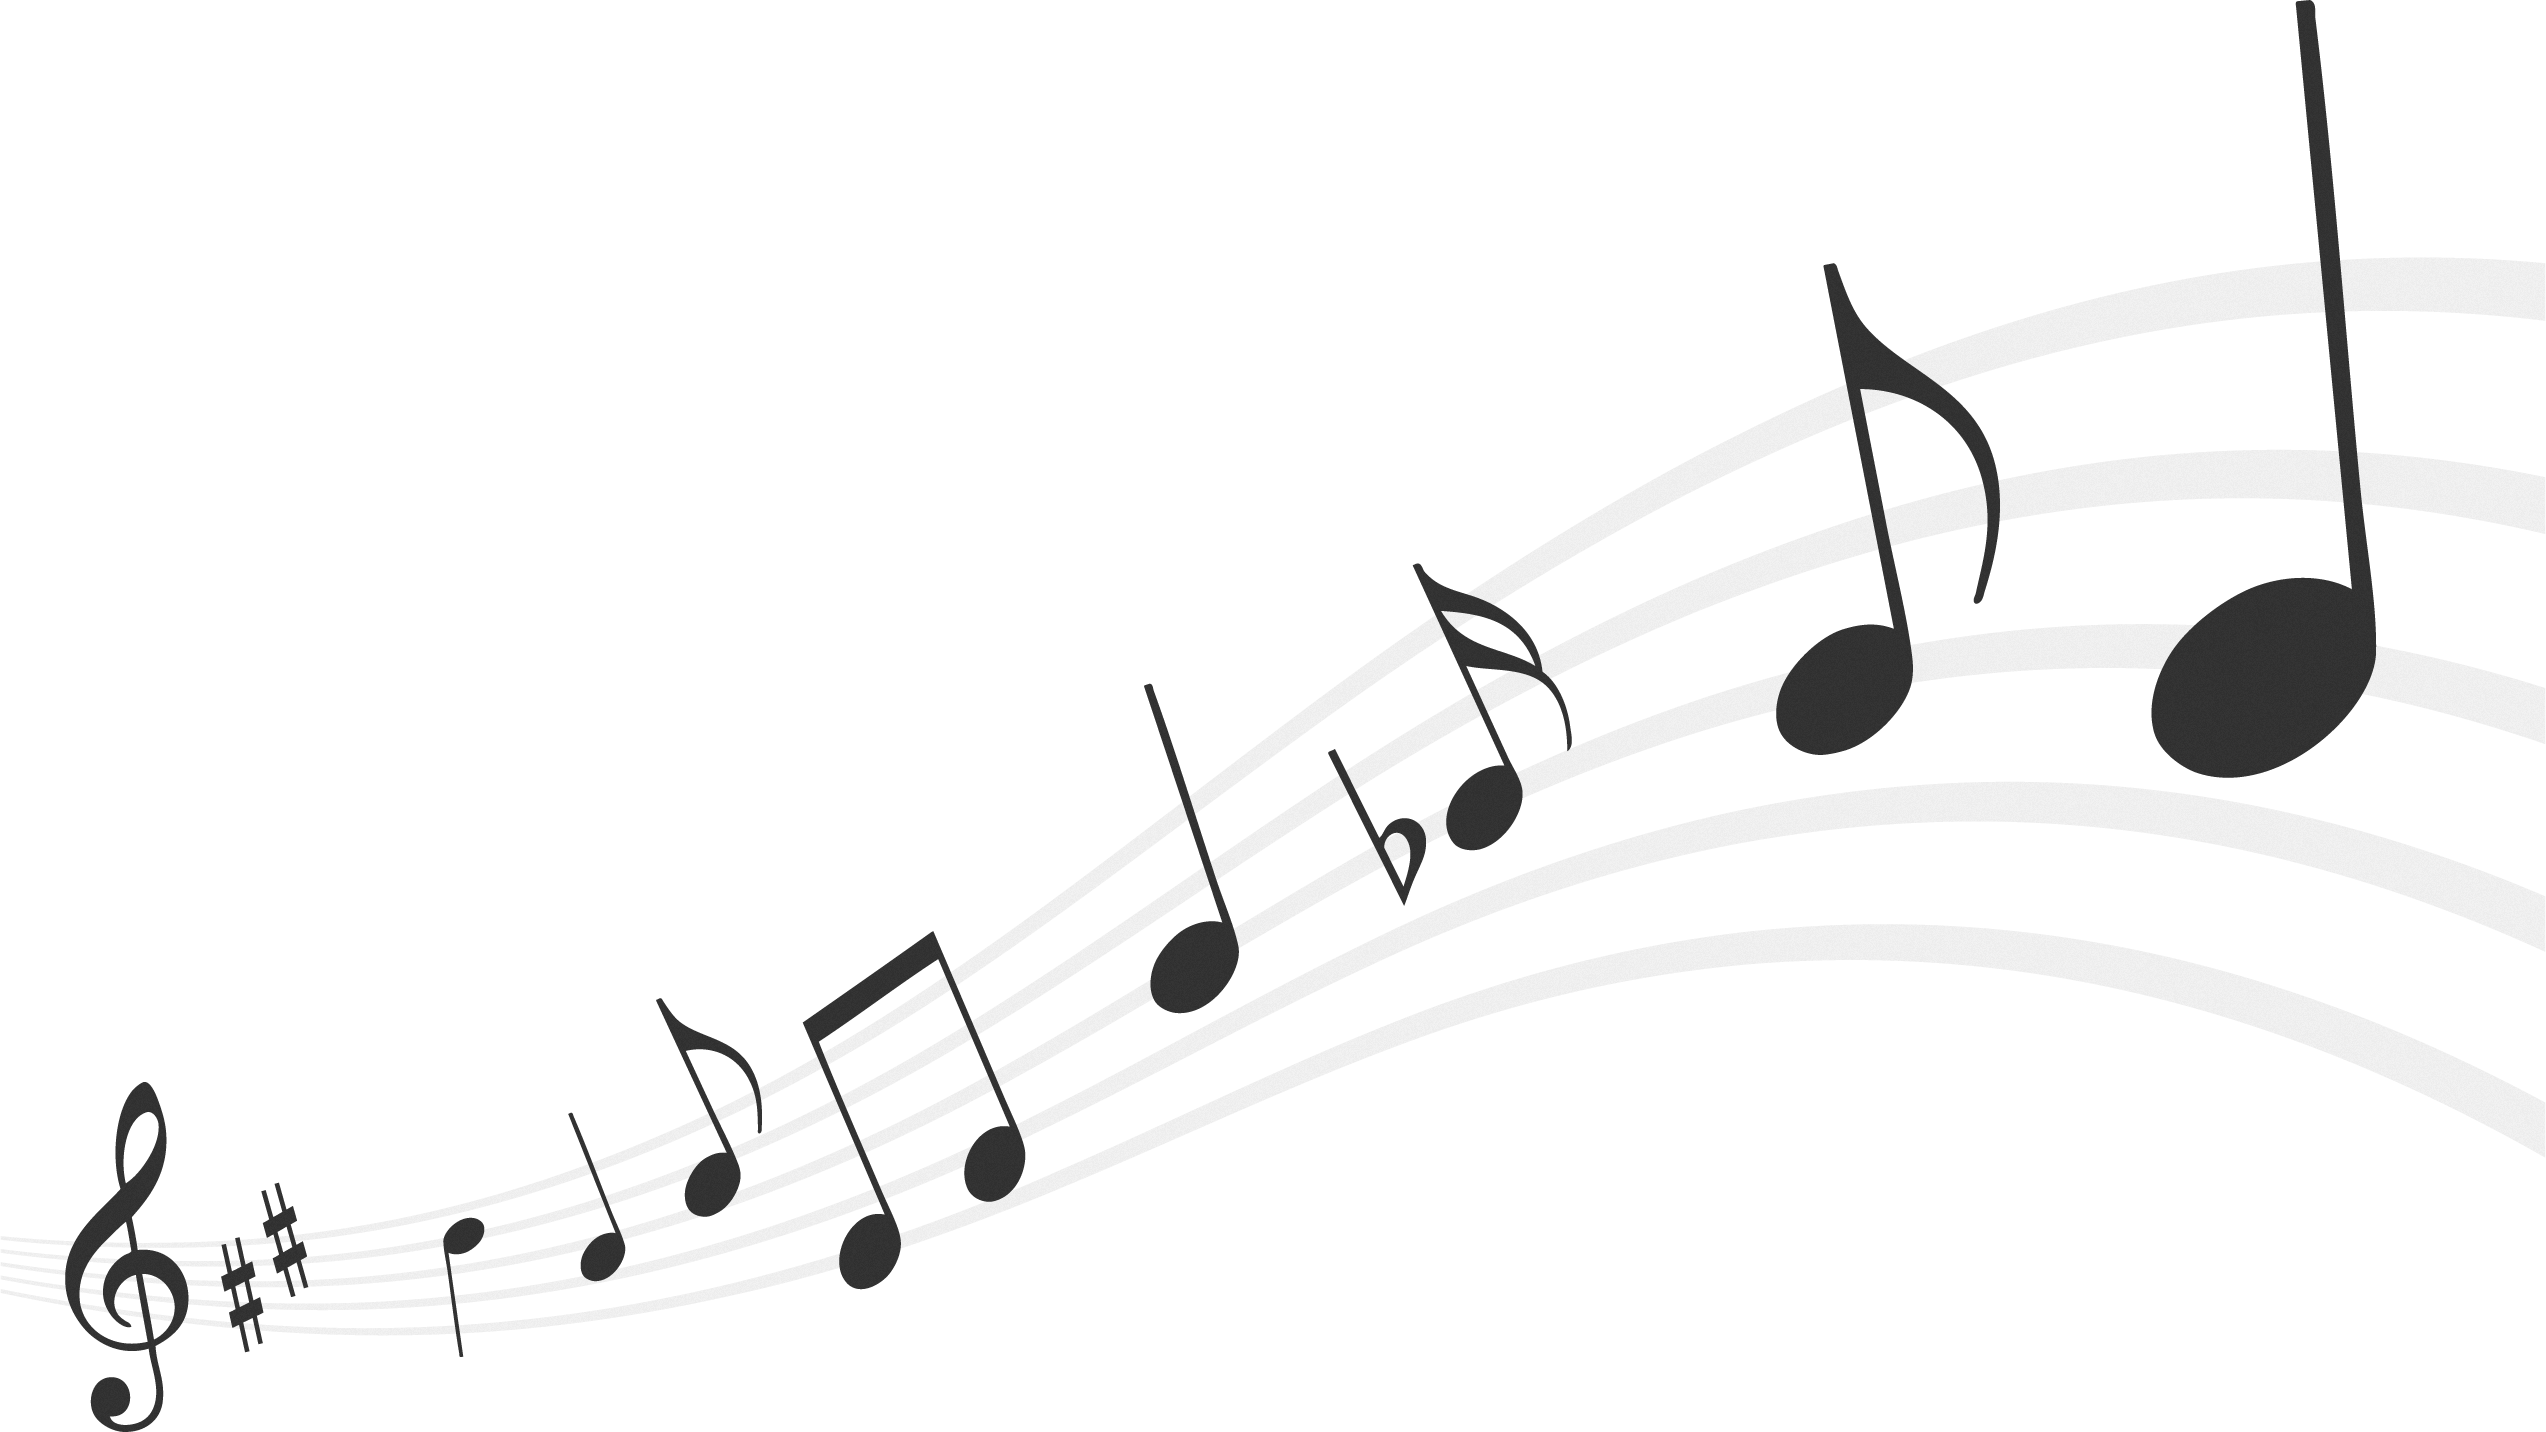 music notes png musical notes png transparent musical notes images #10080